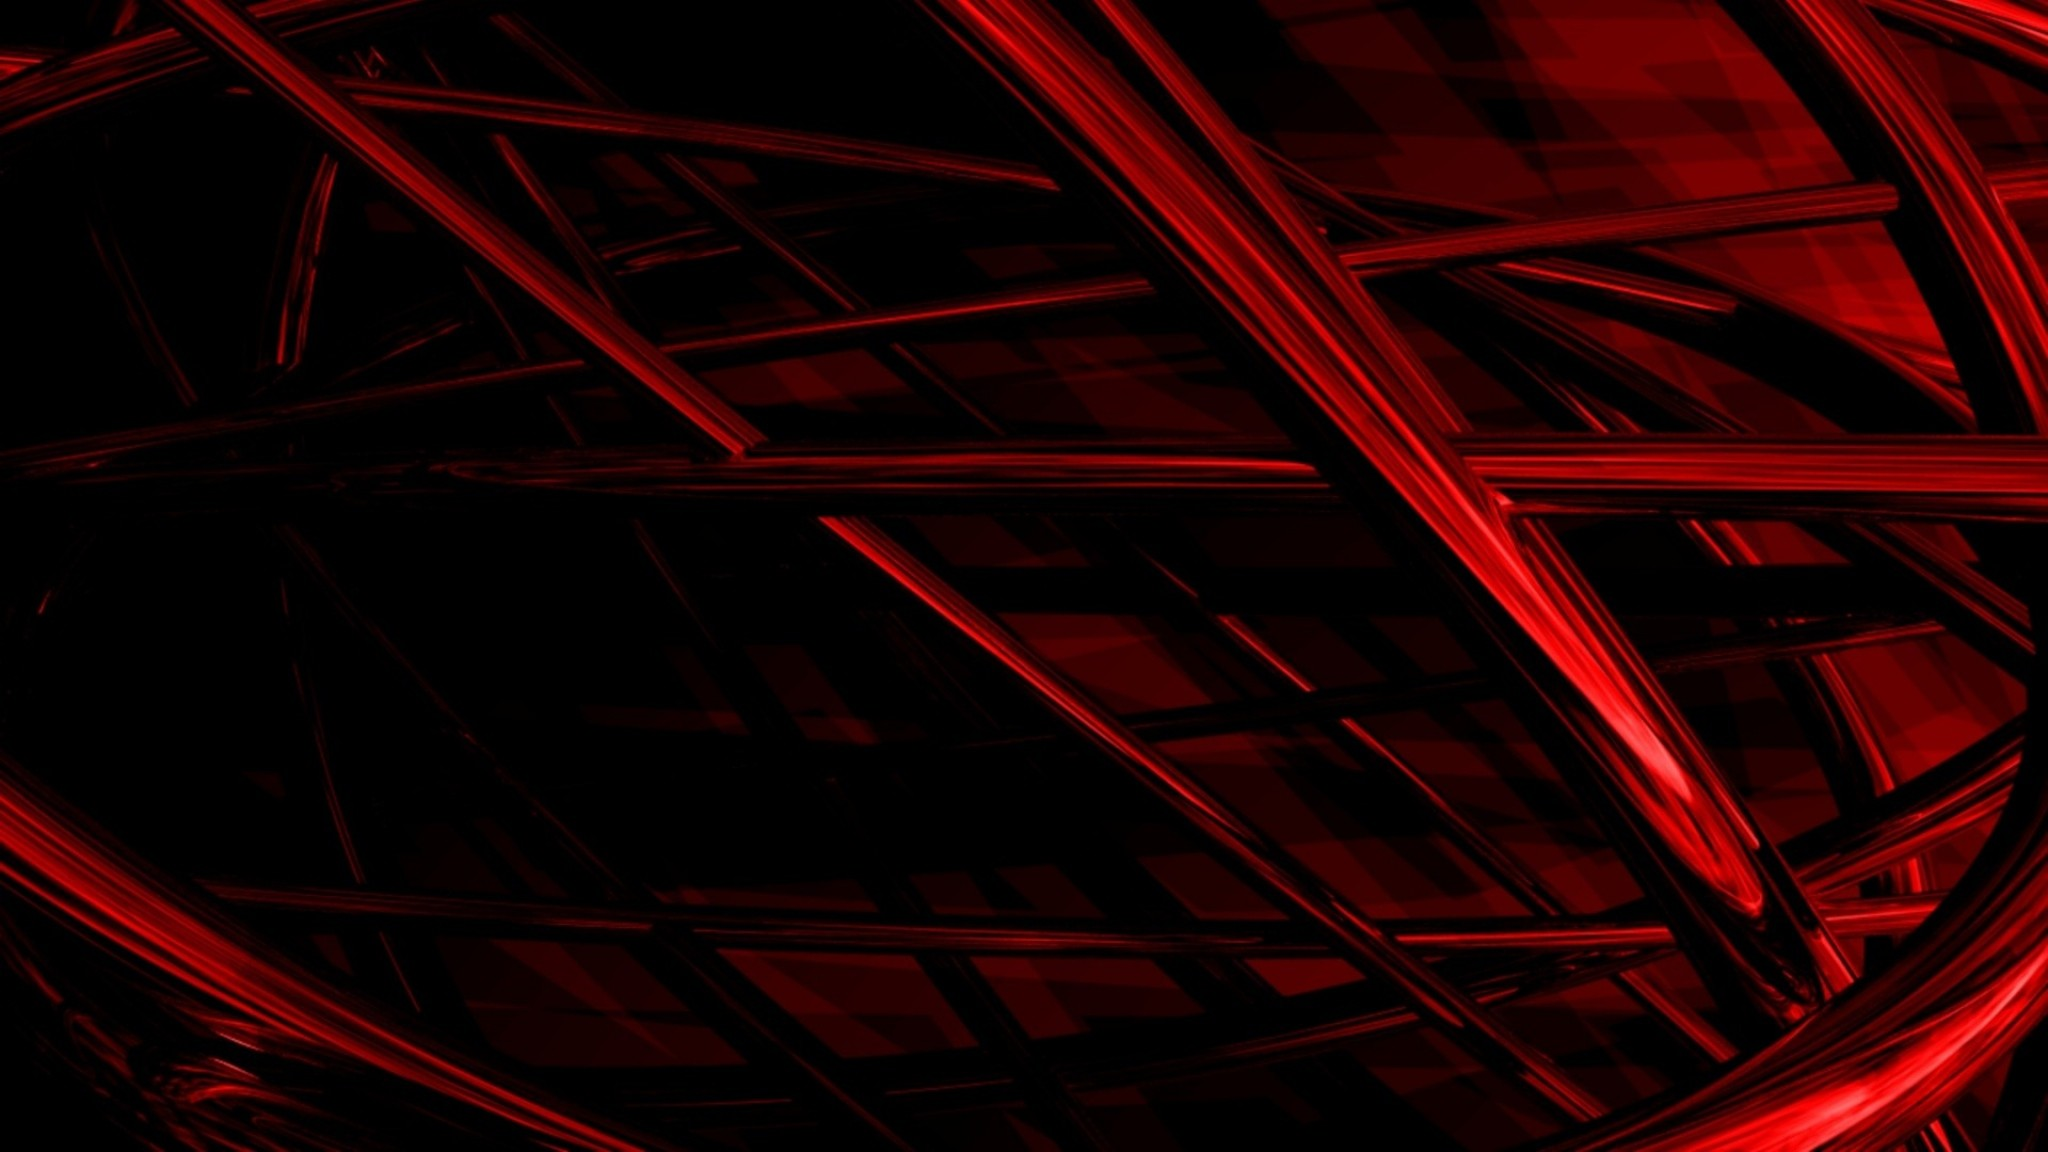 Black And Red Shards Wallpaper Posted By Ethan Walker